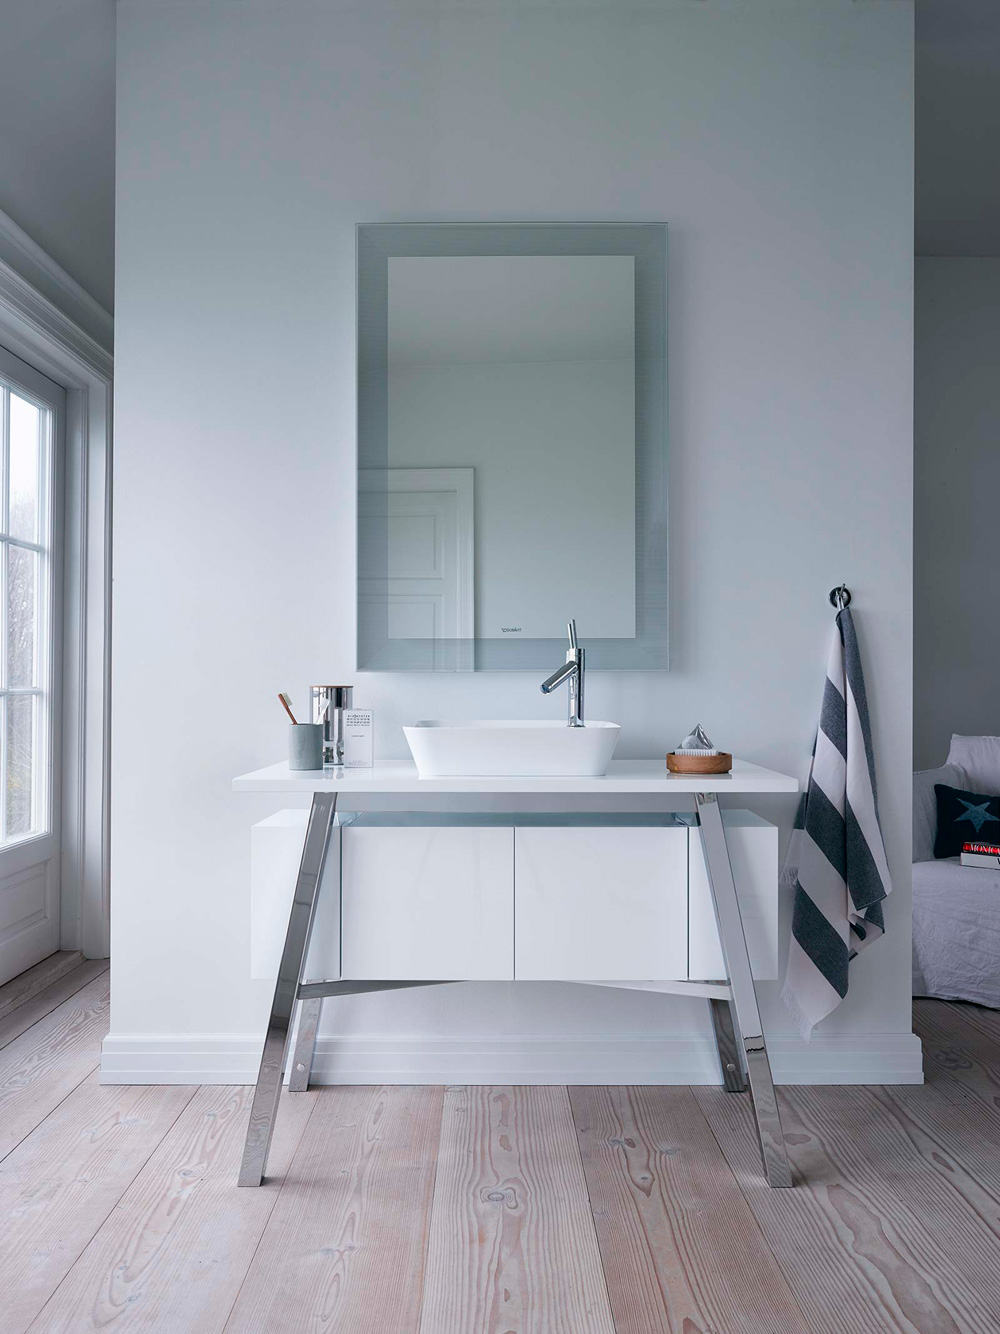 Vasque cape cod duravit schmitt ney for Plan vasque design